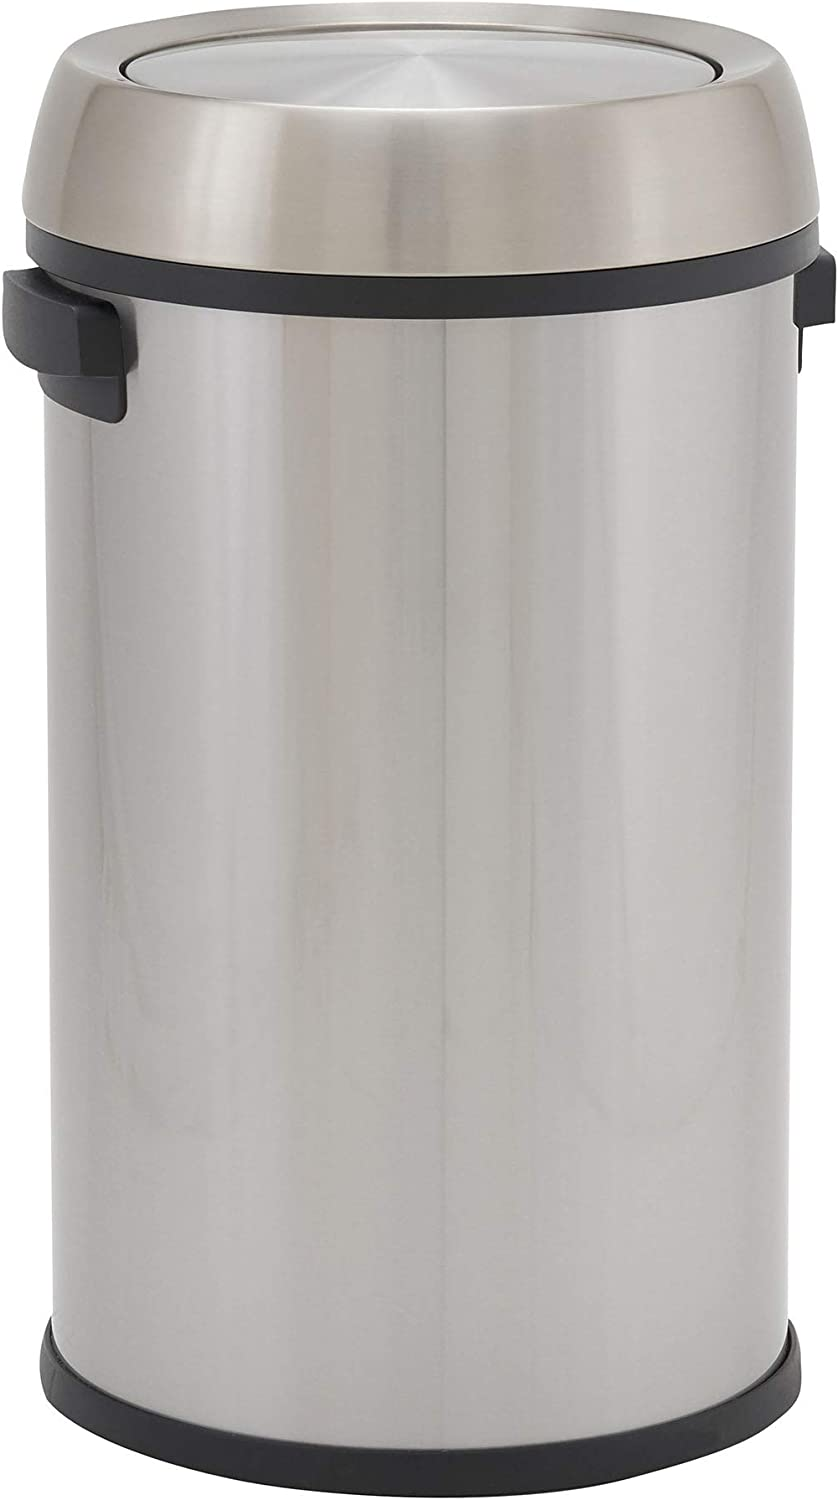 Design Trend Round Stainless Steel Commercial Swi Trash Can with Daily bargain sale Arlington Mall